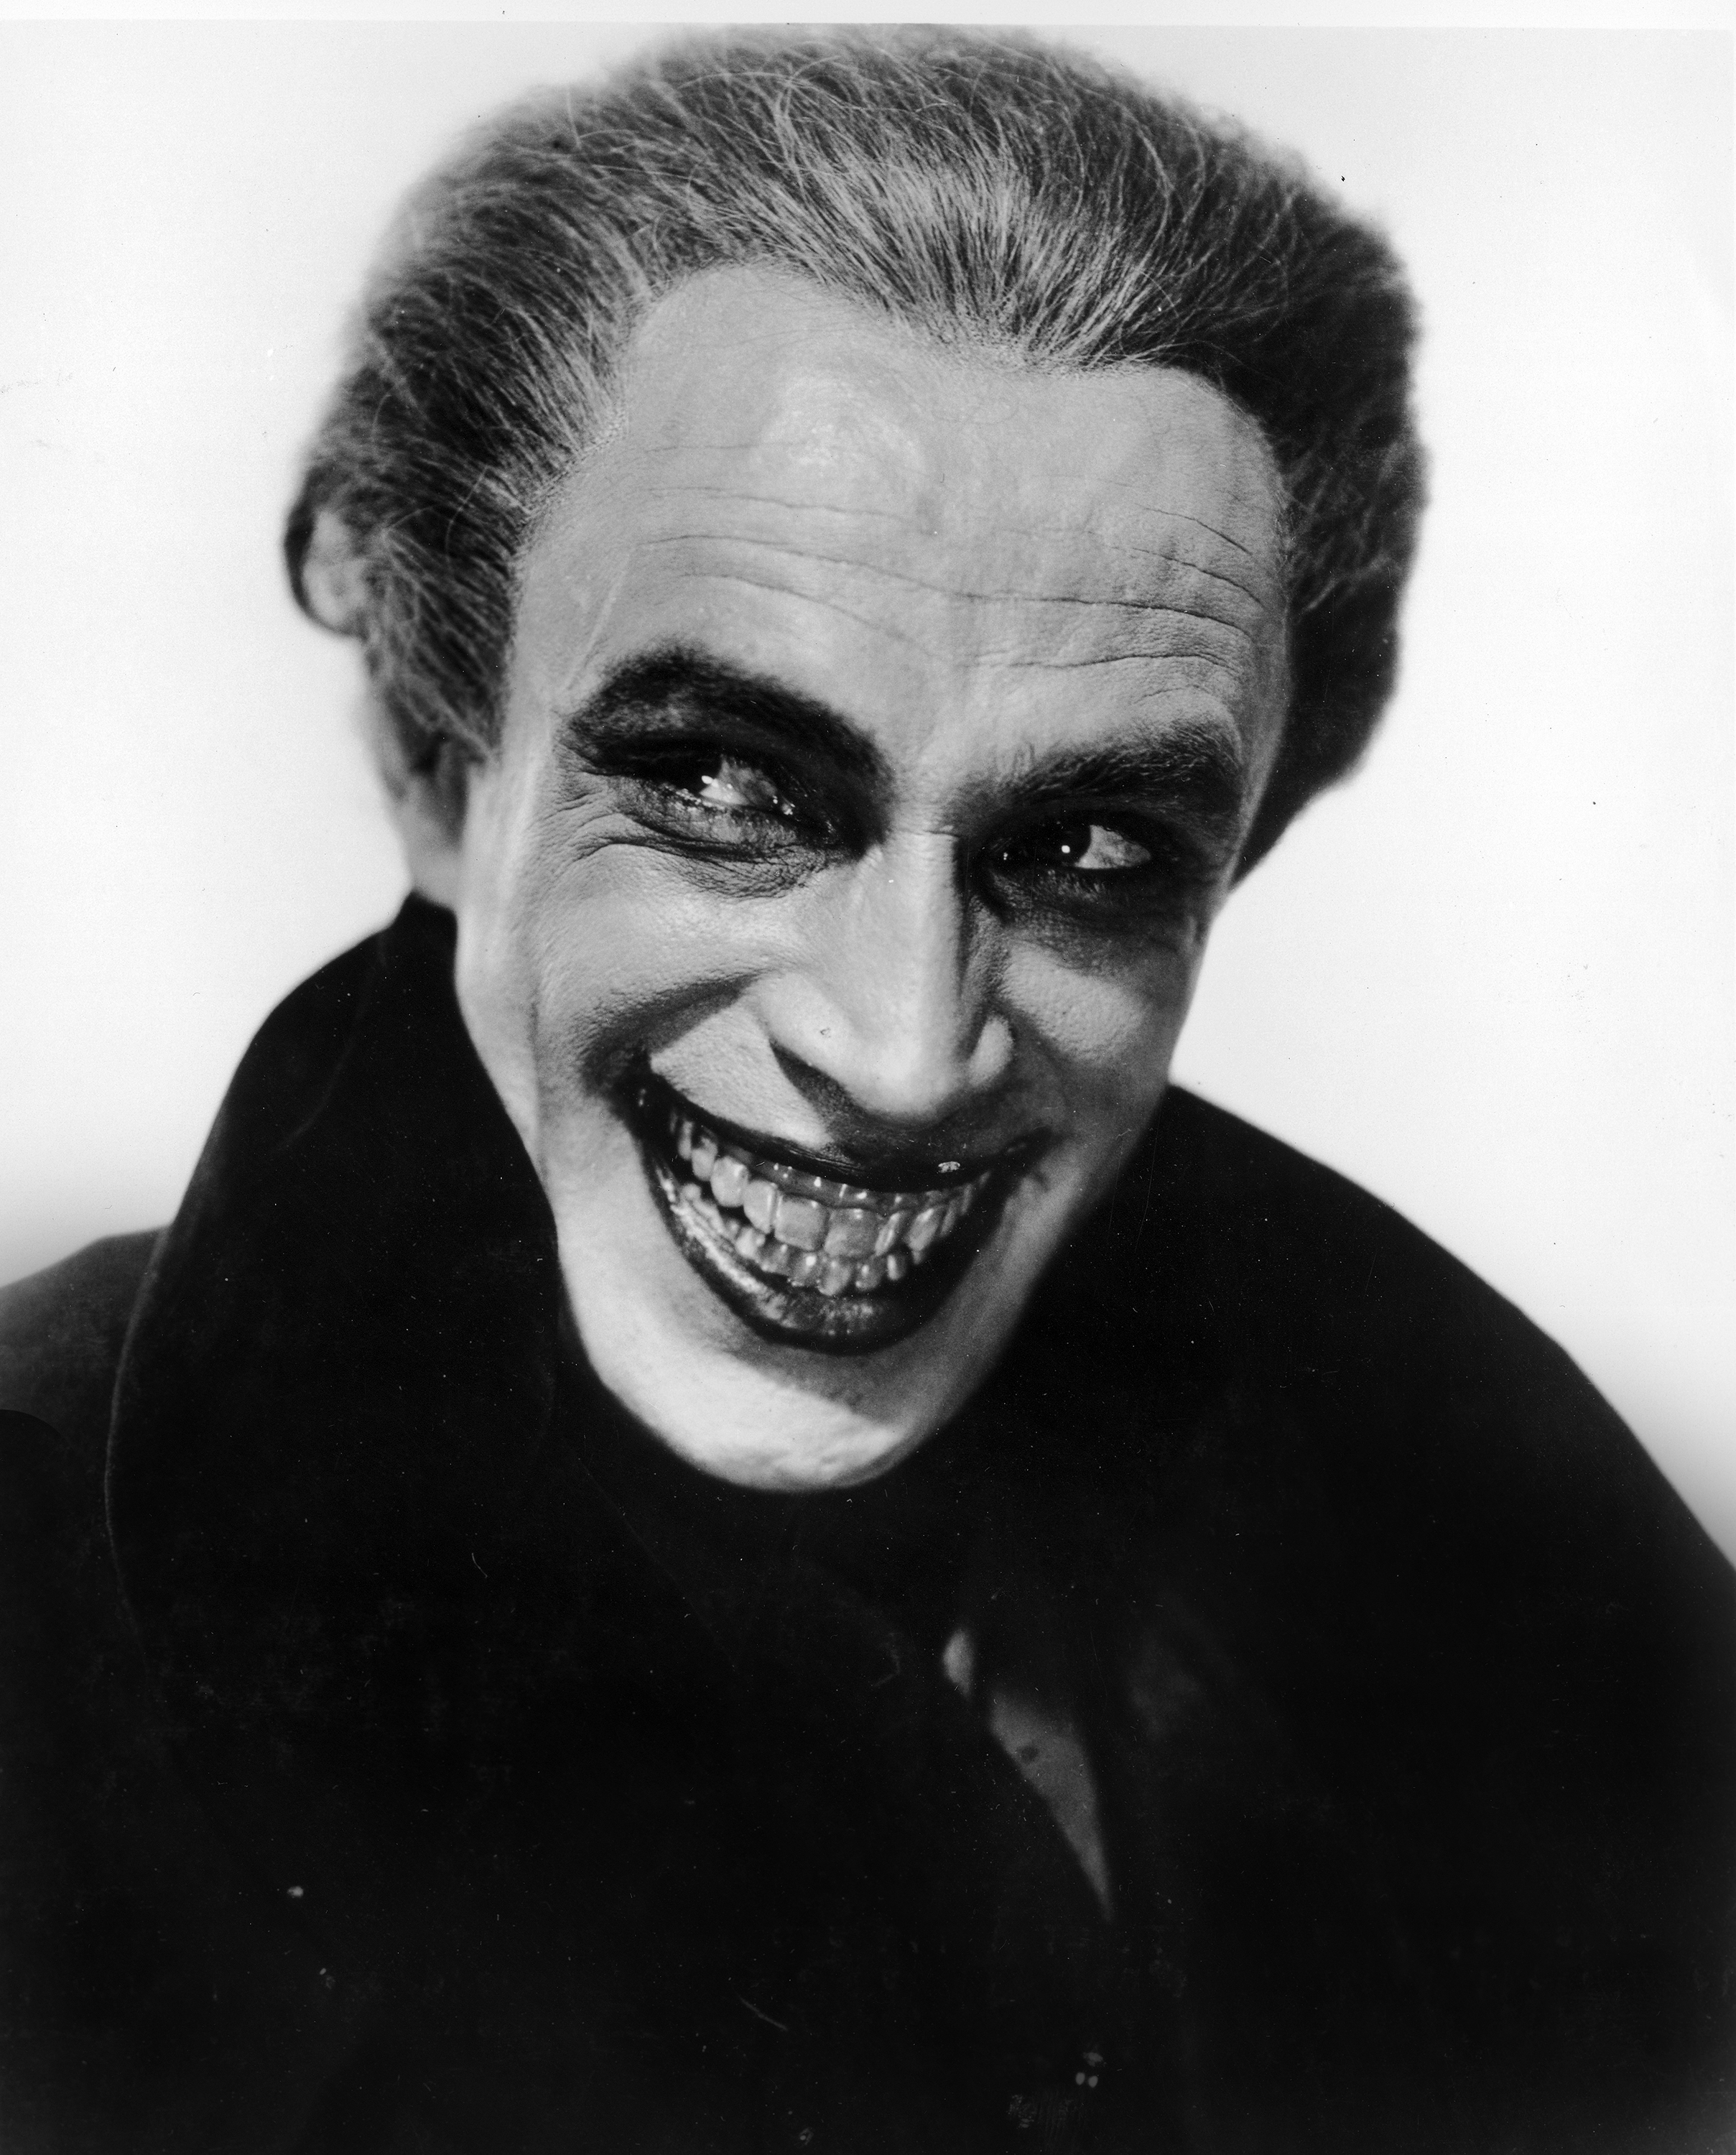 The Man Who Laughs  (1928), directed by Paul Leni.